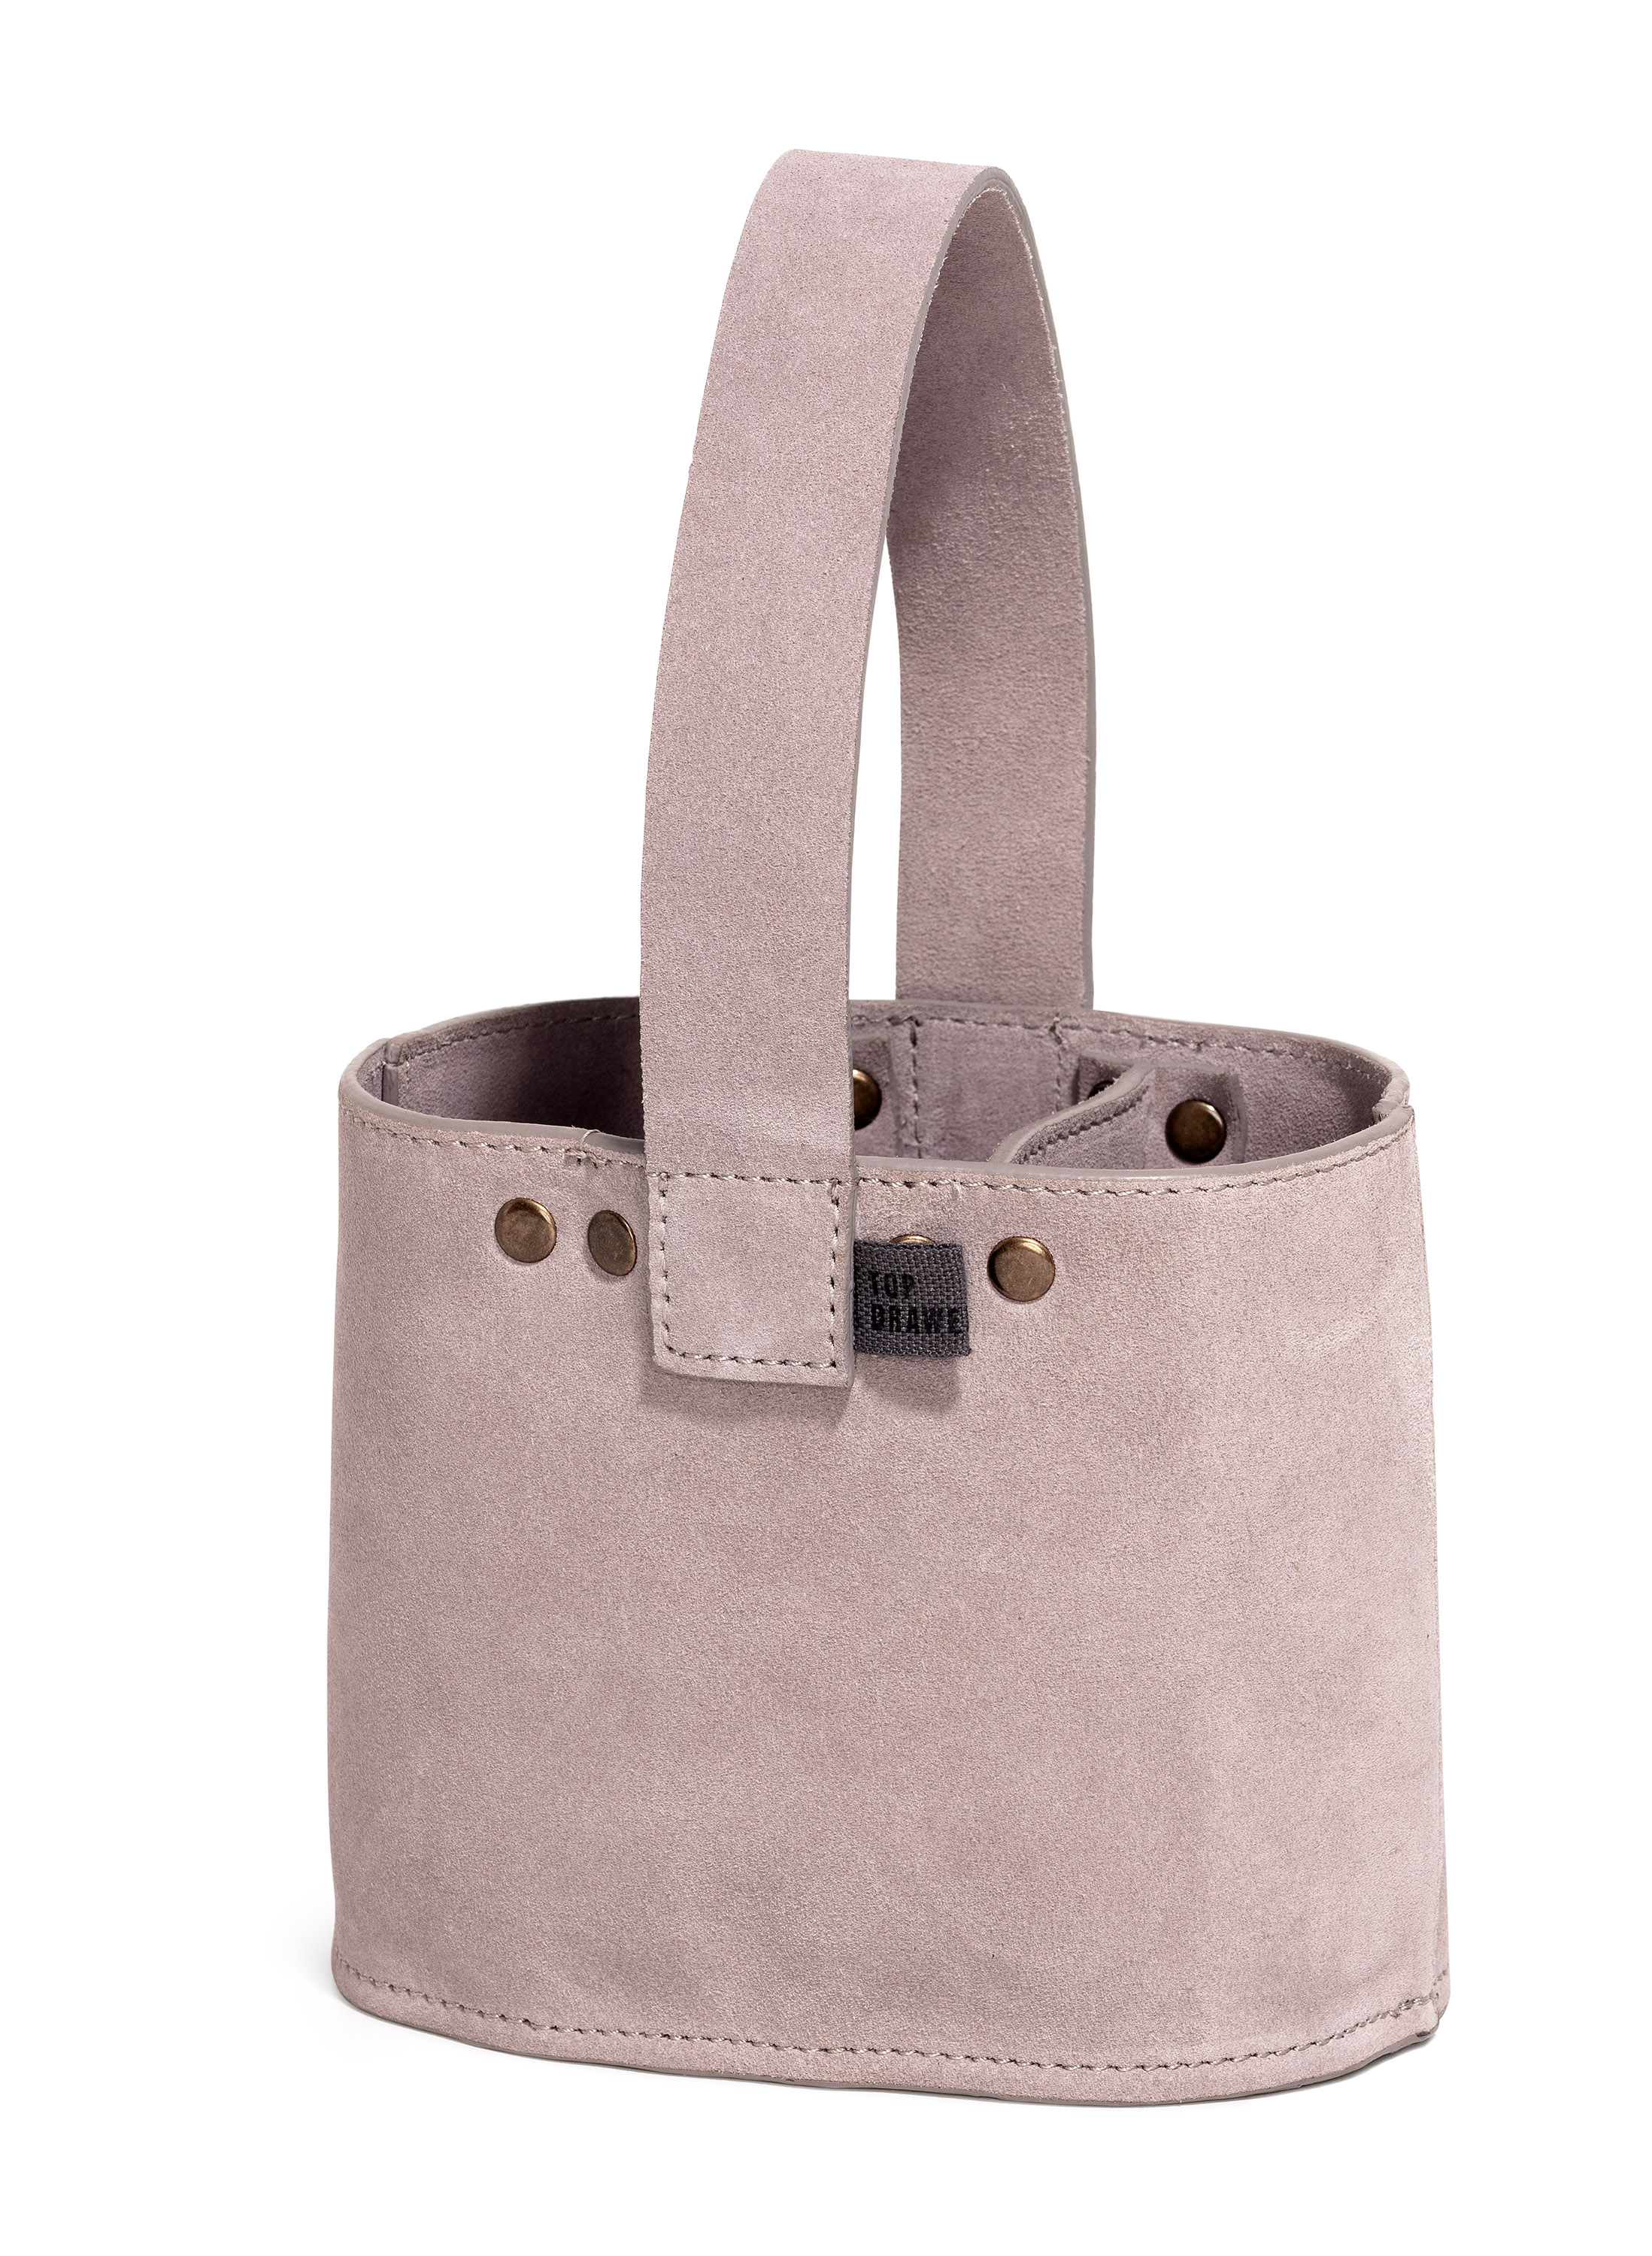 Patmore3 pale heather suede 19x12x14